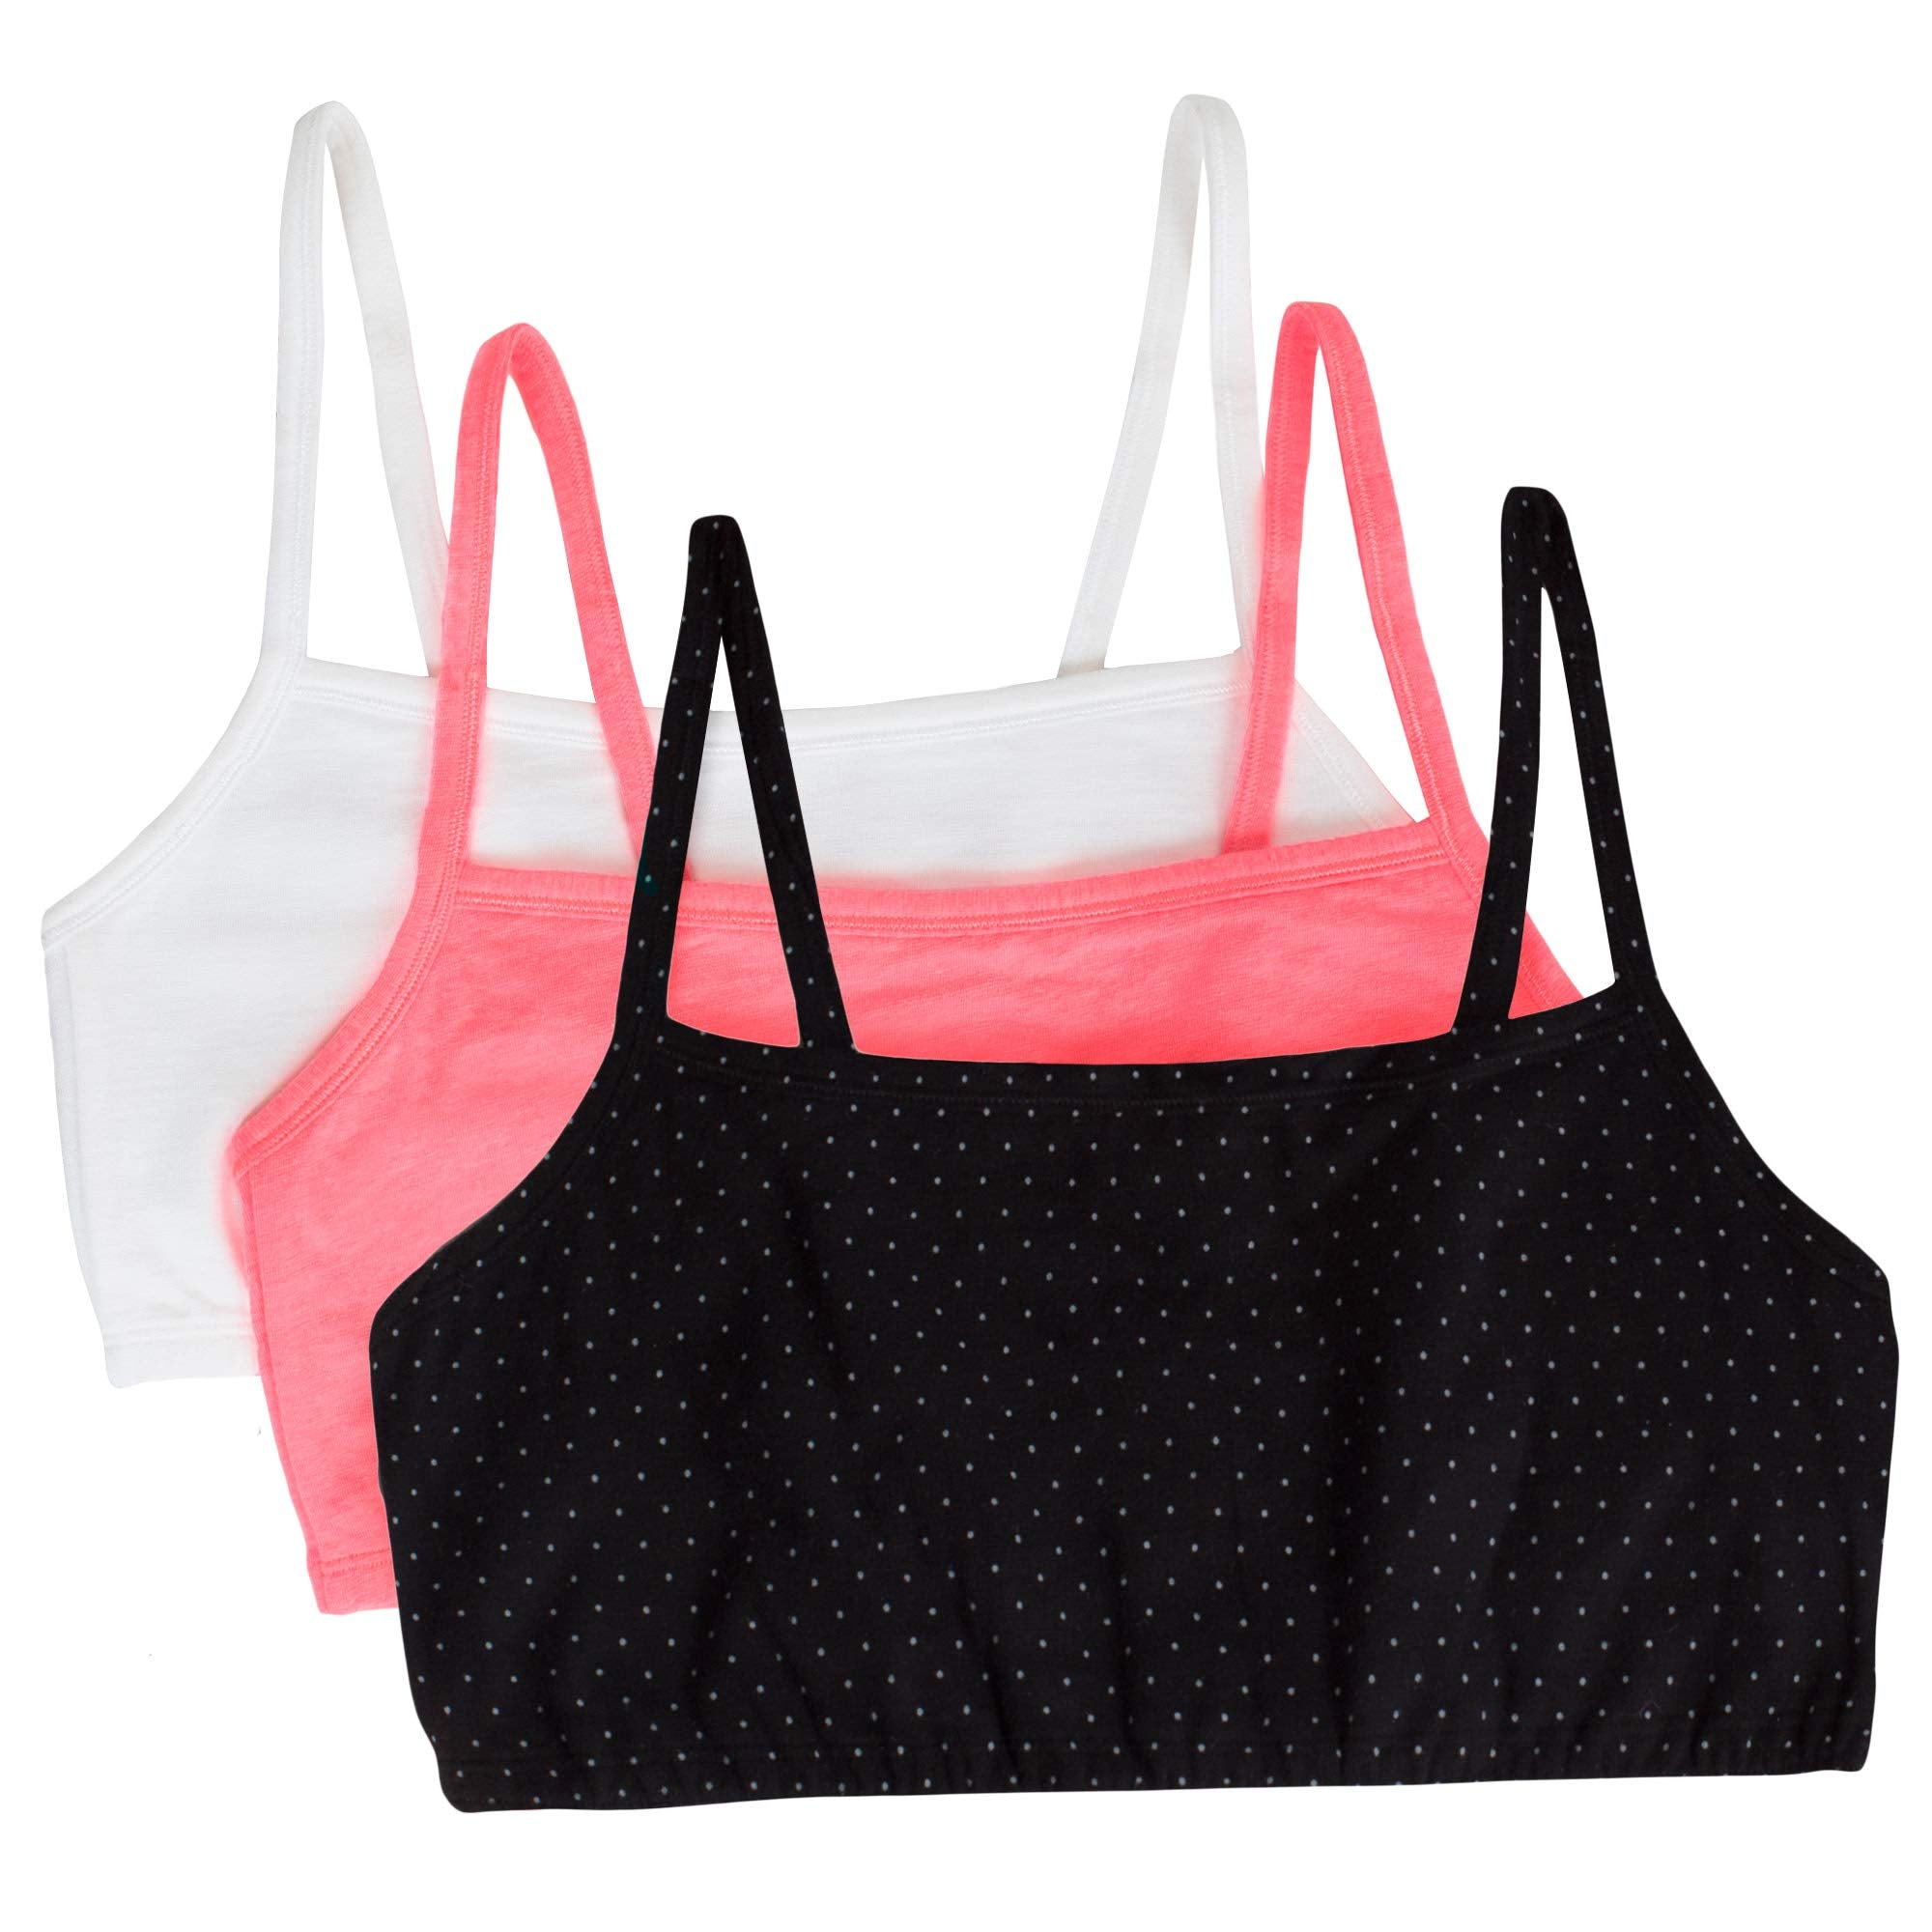 Red and passion fuit Women Sports Bra strappy size 36 Style 9036 3-Pack Black